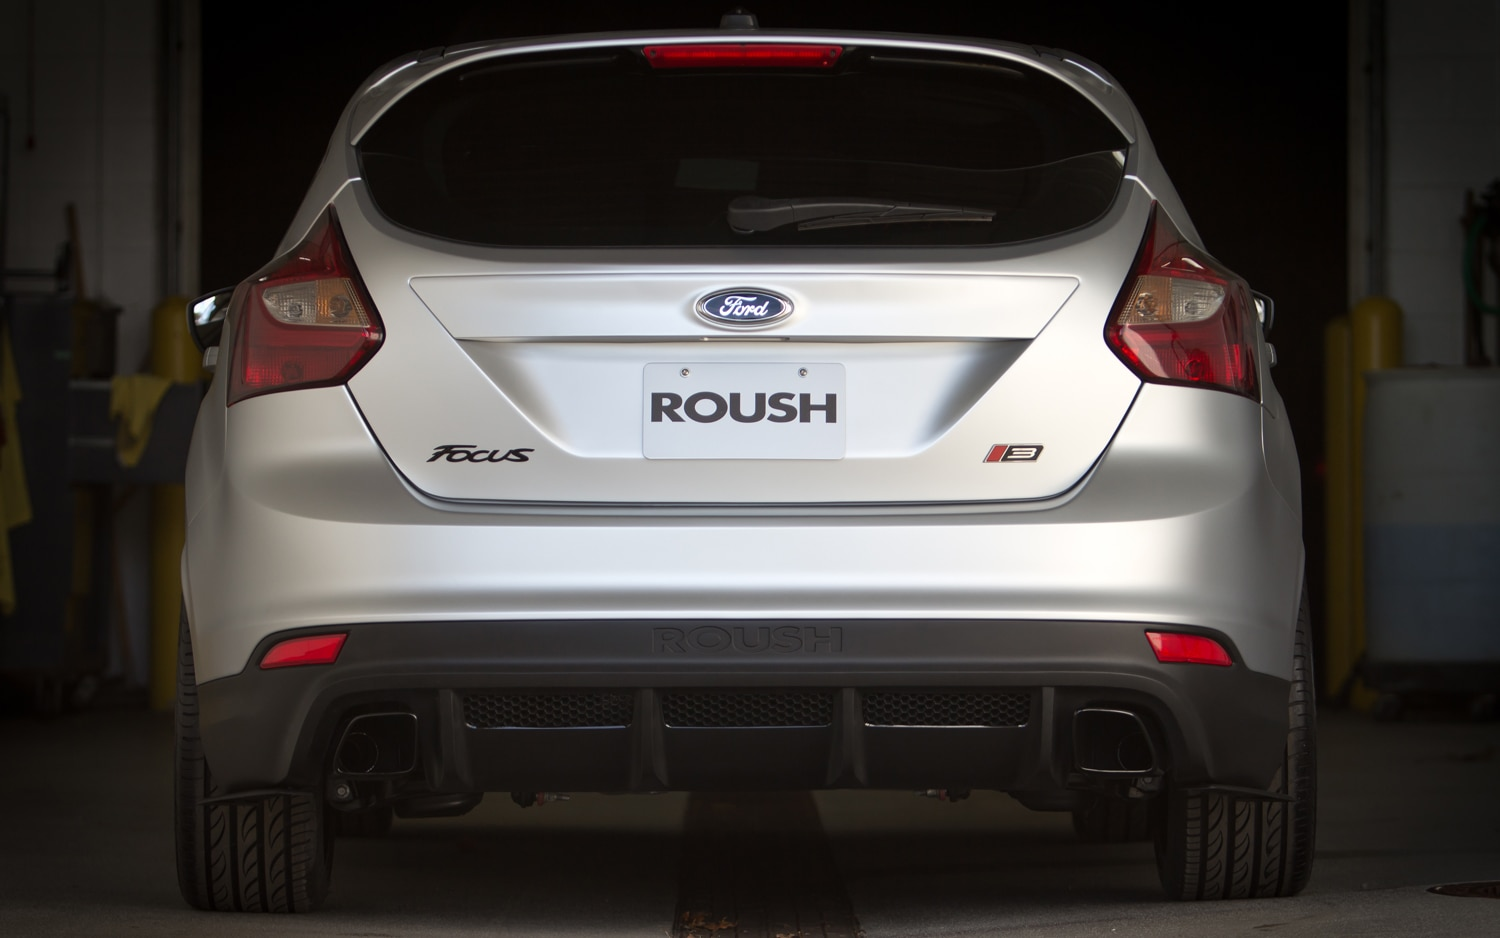 Roush Performance Developing Sporty Focus RS3, Possibly with